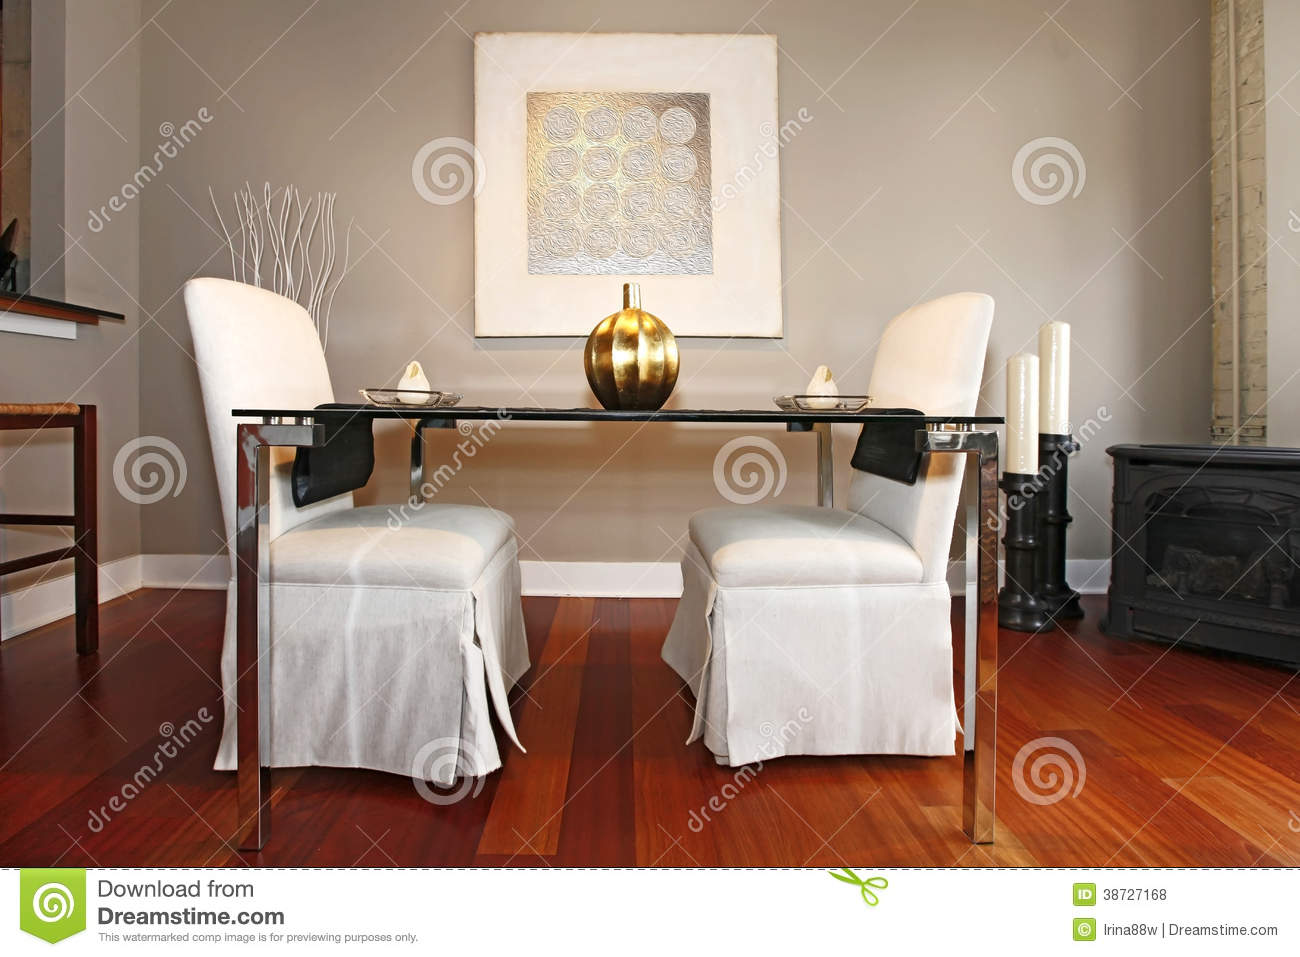 Elegant Tableware For Dining Rooms With Style: Elegant Dining Table Set In A Modern Living Room Stock